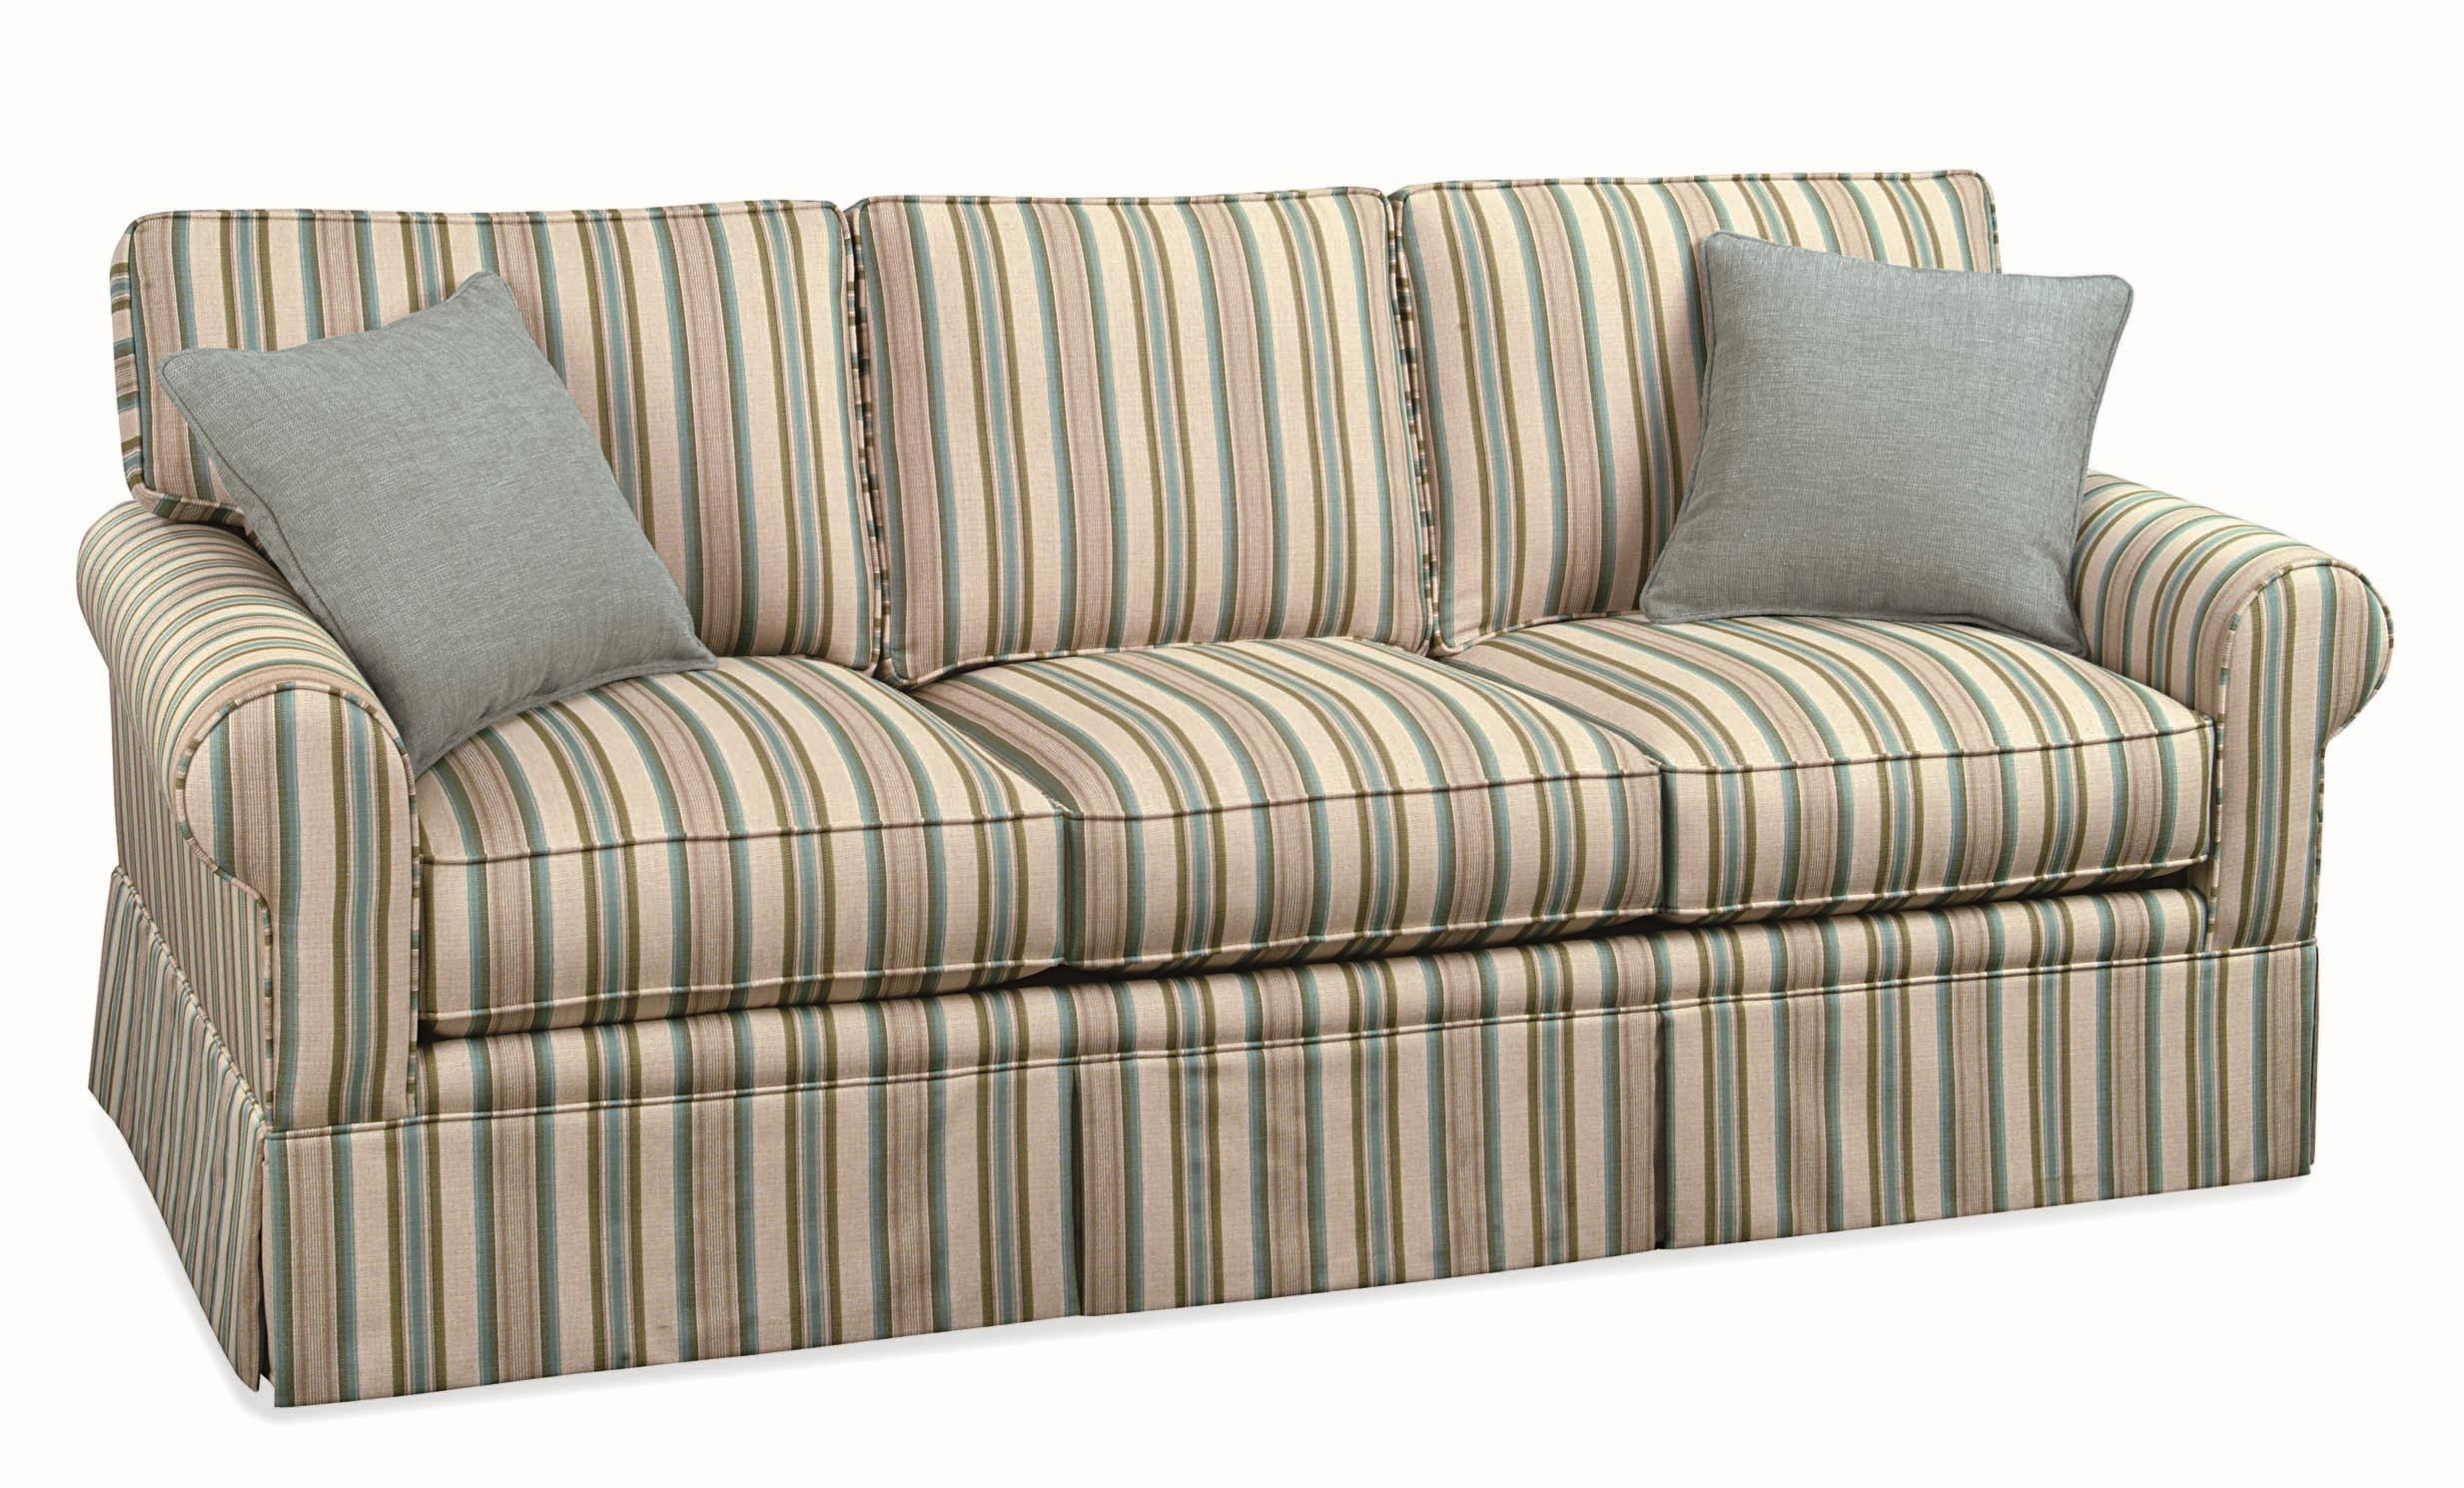 Benton 3-Seater Stationary Sofa by Braxton Culler at Alison Craig Home Furnishings